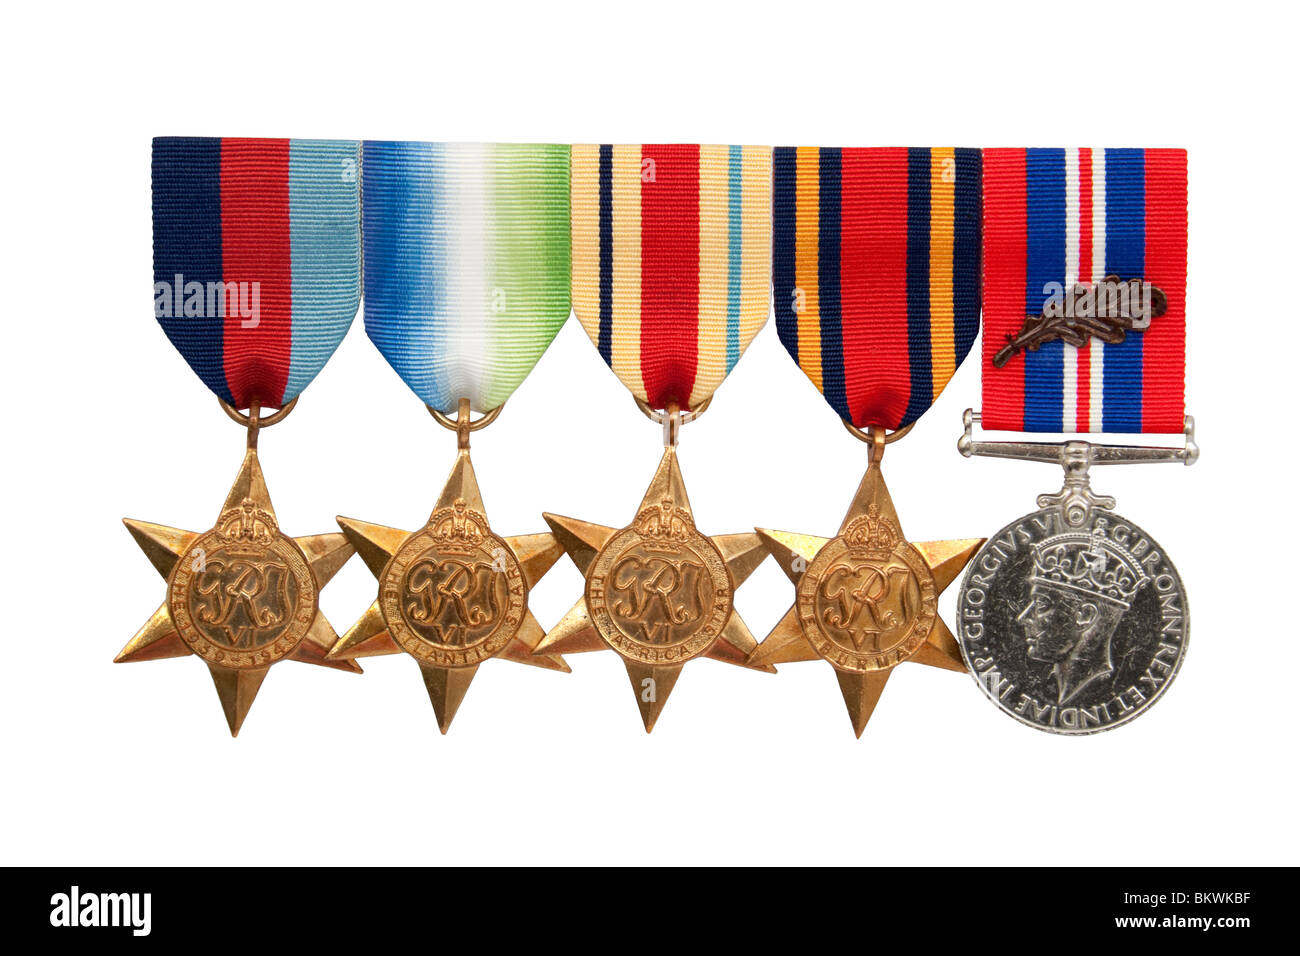 Set of World War II British Royal Navy military medals with Bronze Oak leaf, isolated on white background - Stock Image